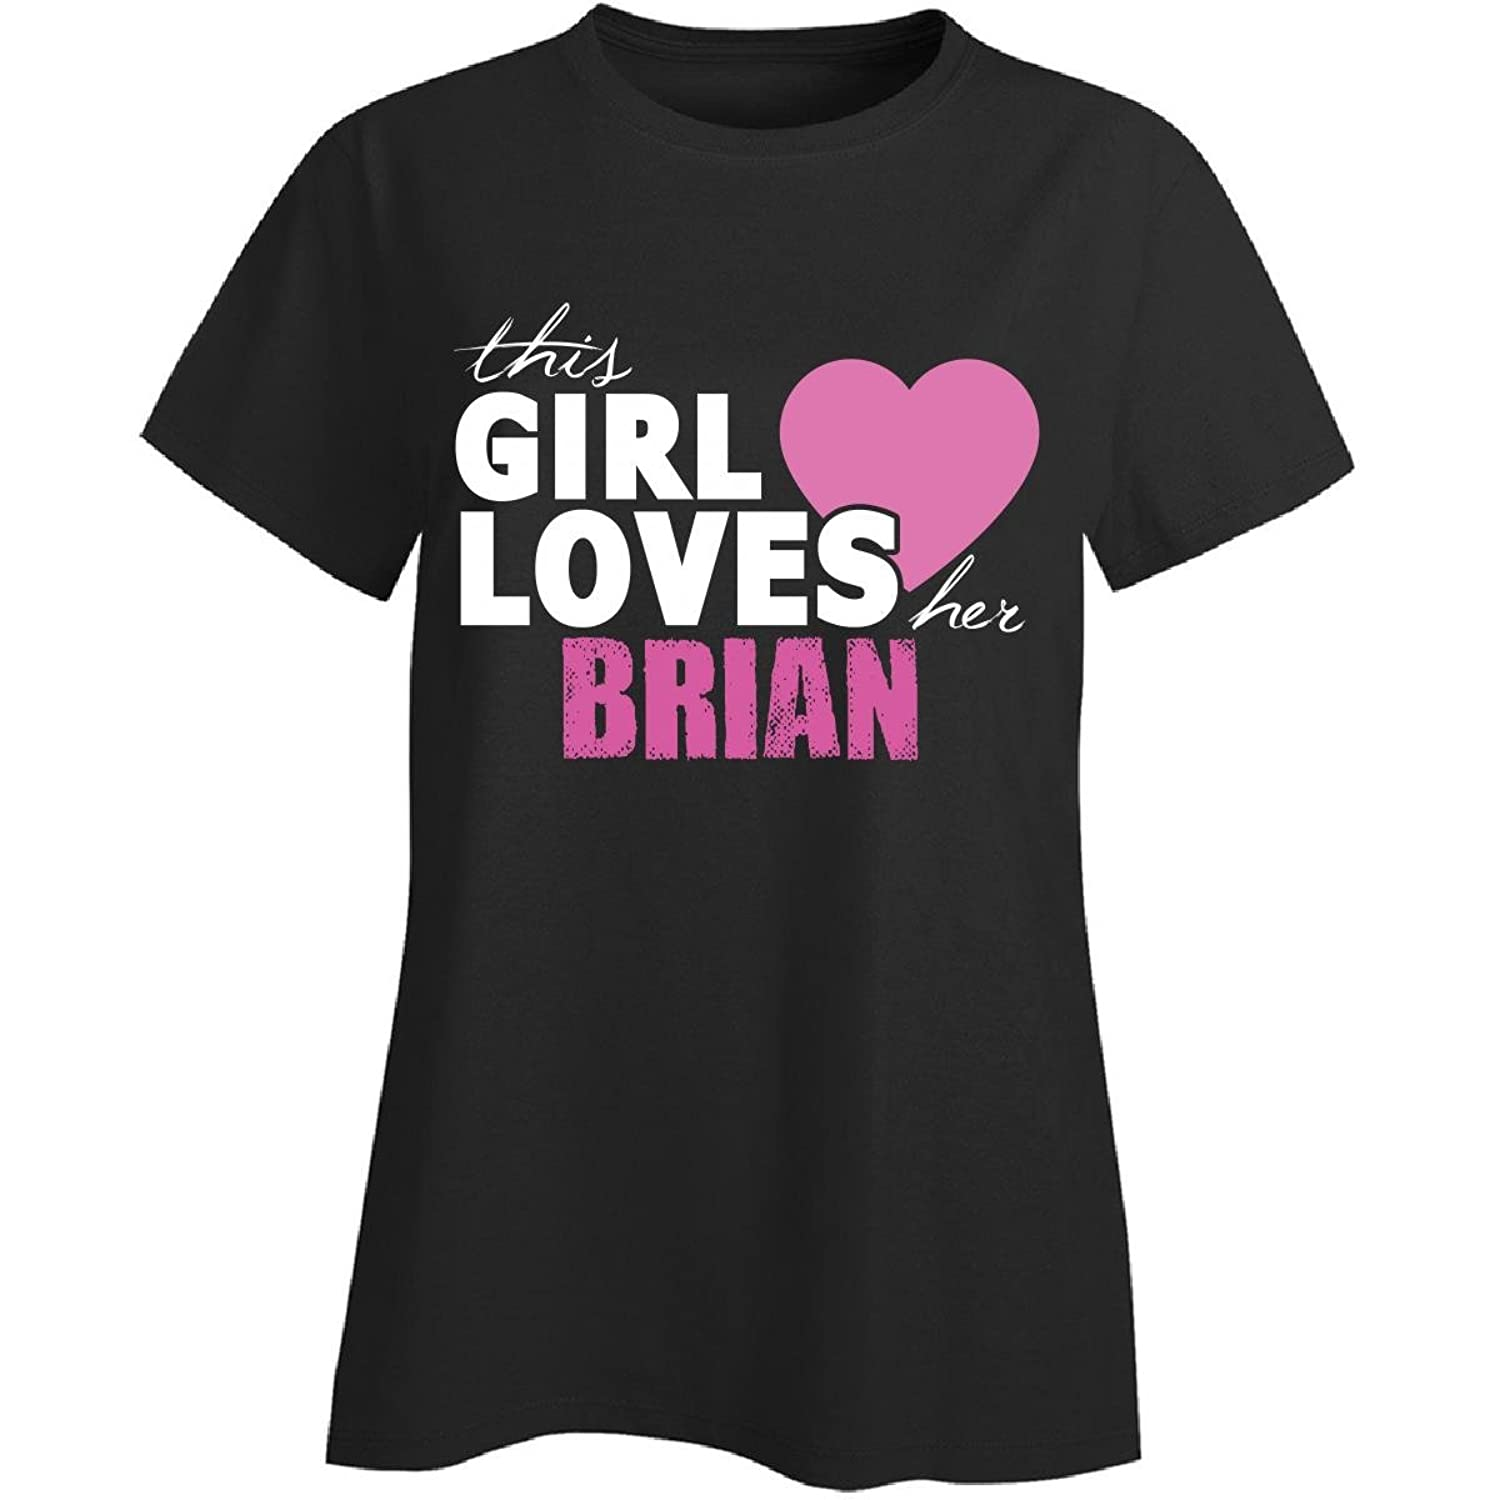 This Girl Loves Her Brian Personal Valentines Gift - Ladies T-shirt